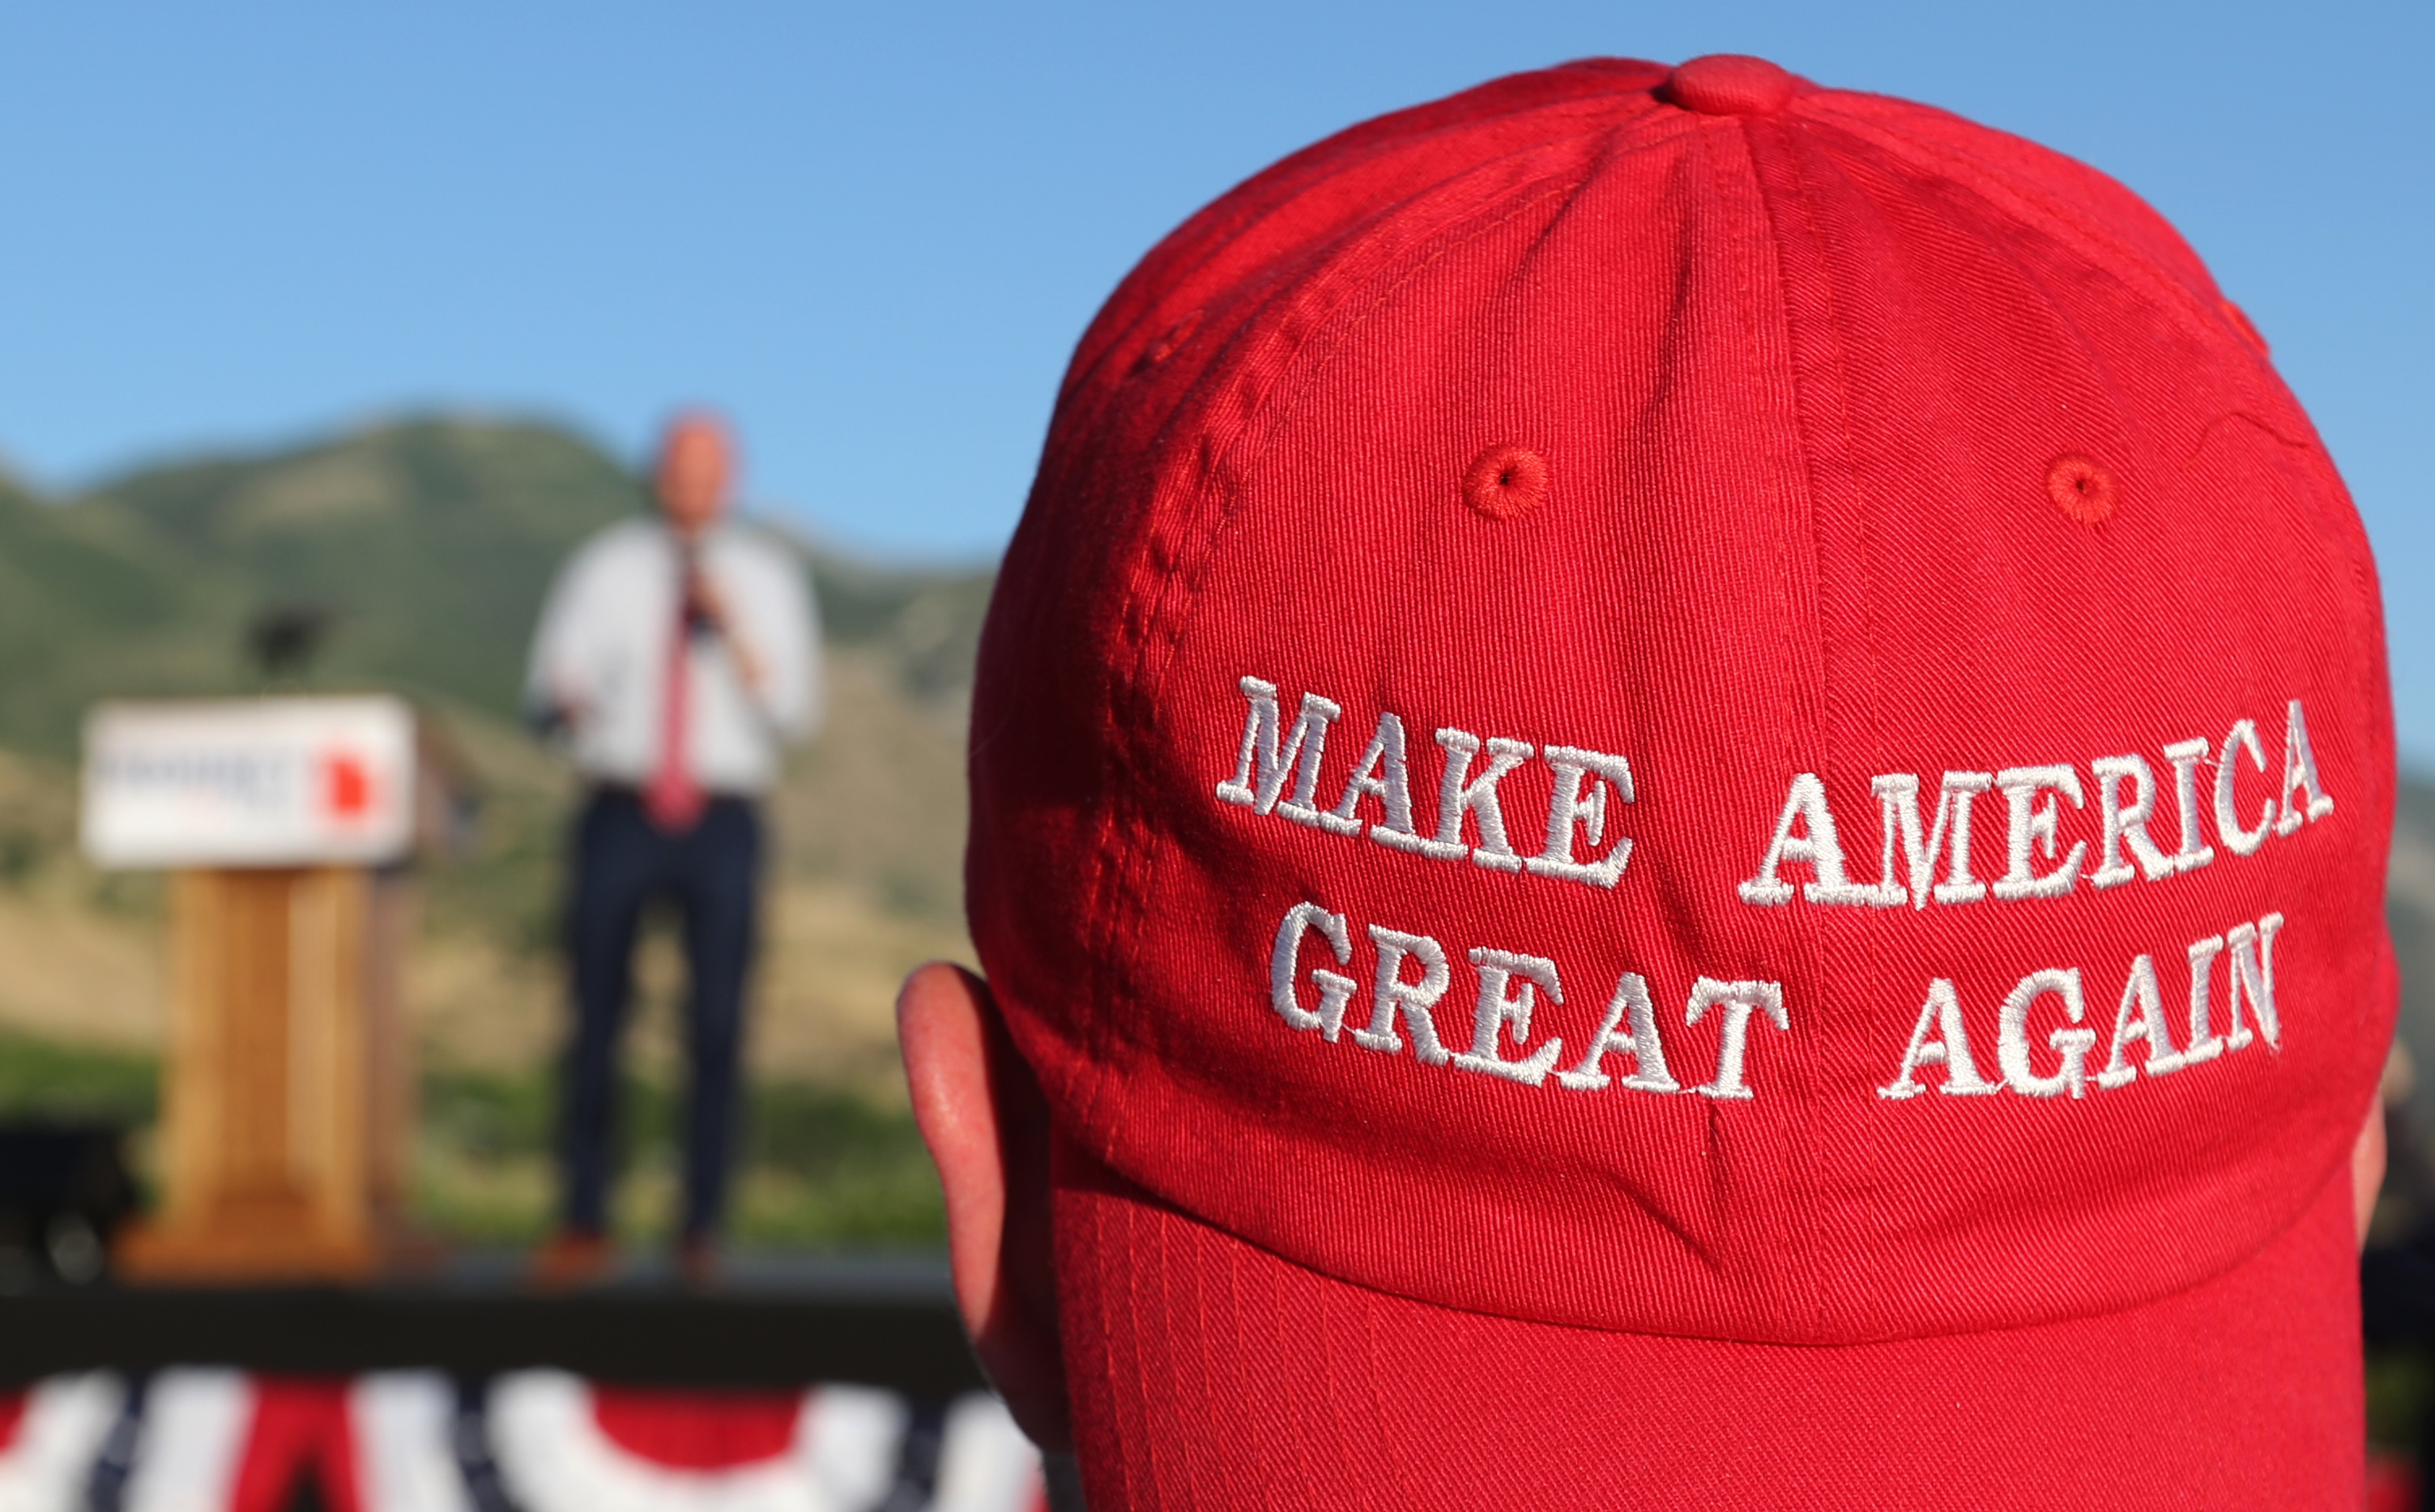 A Romney supporter listens to a speaker as he wears a 'Make America Great Again' hat at the Mitt Romney election party on June 26, 2018 in Orem, Utah (Getty Images)